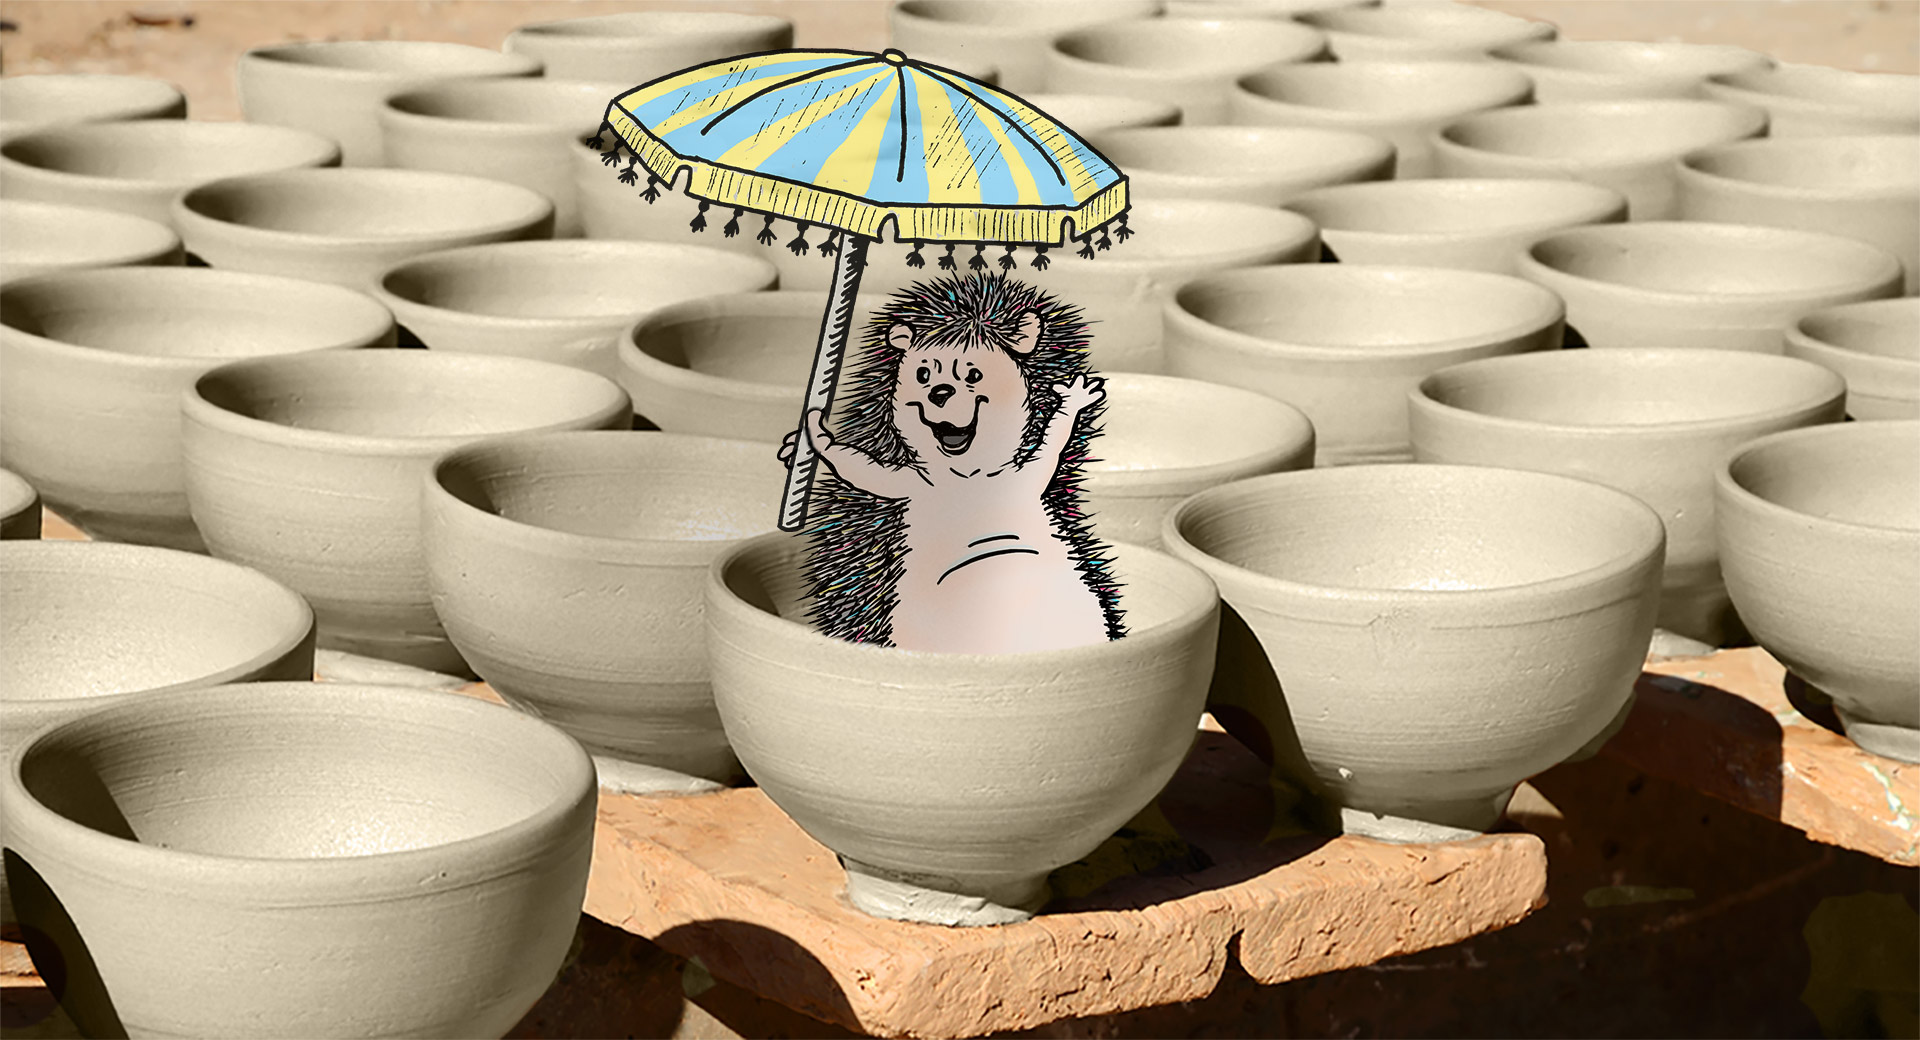 Hedgehog supervising handmade pottery bowls drying in the bright sun